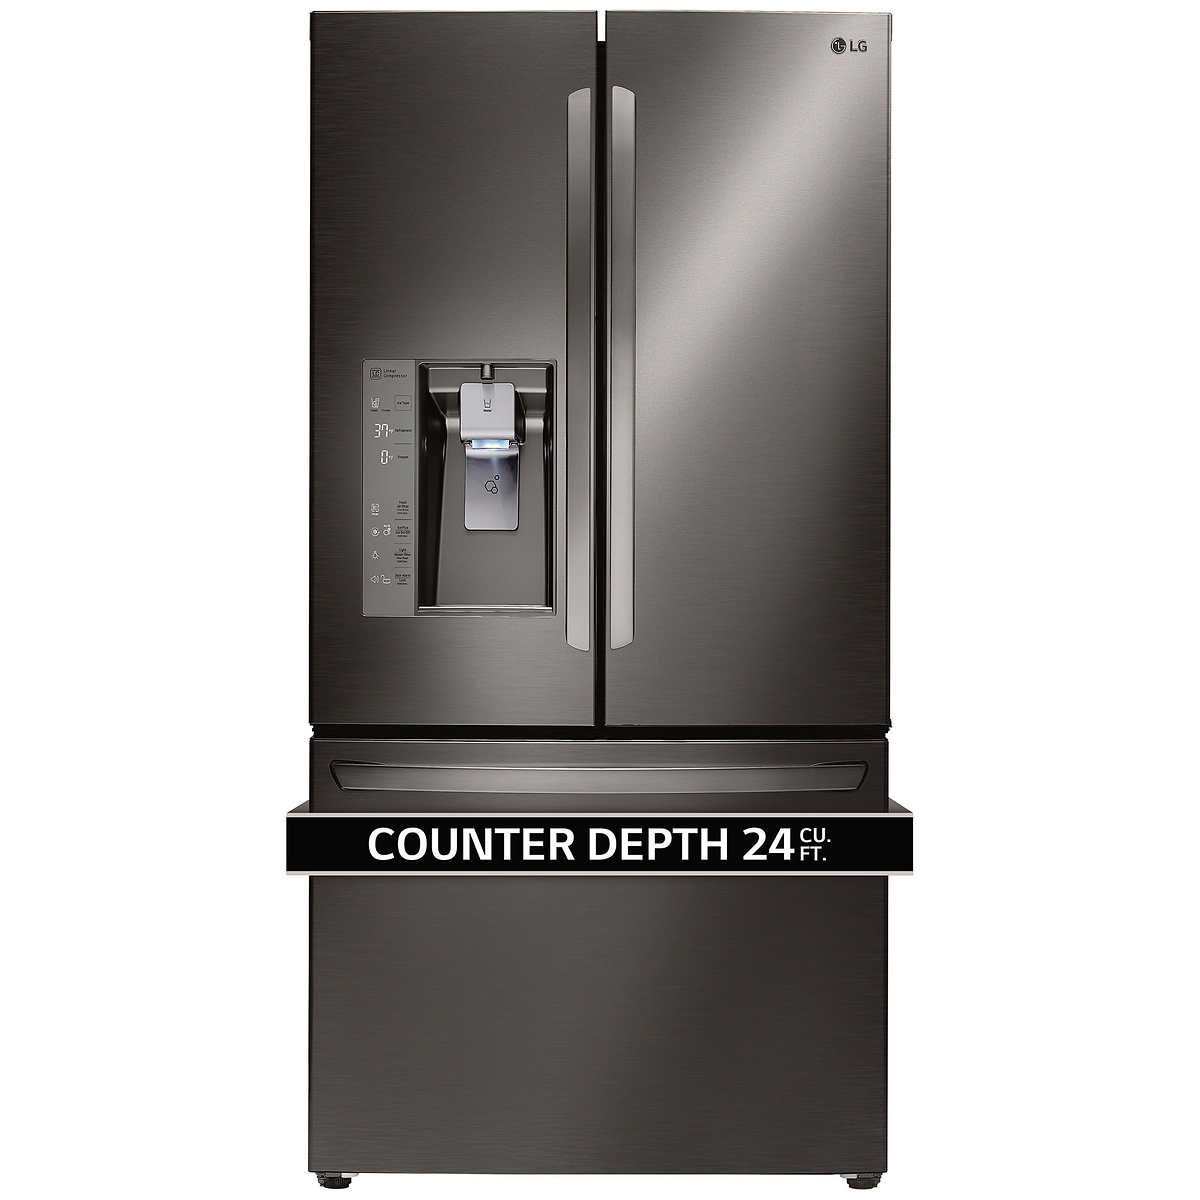 Whirlpool white ice costco canada - Lg 24cuft 3 Door French Door Ultra Capacity Counter Depth Refrigerator In Black Stainless